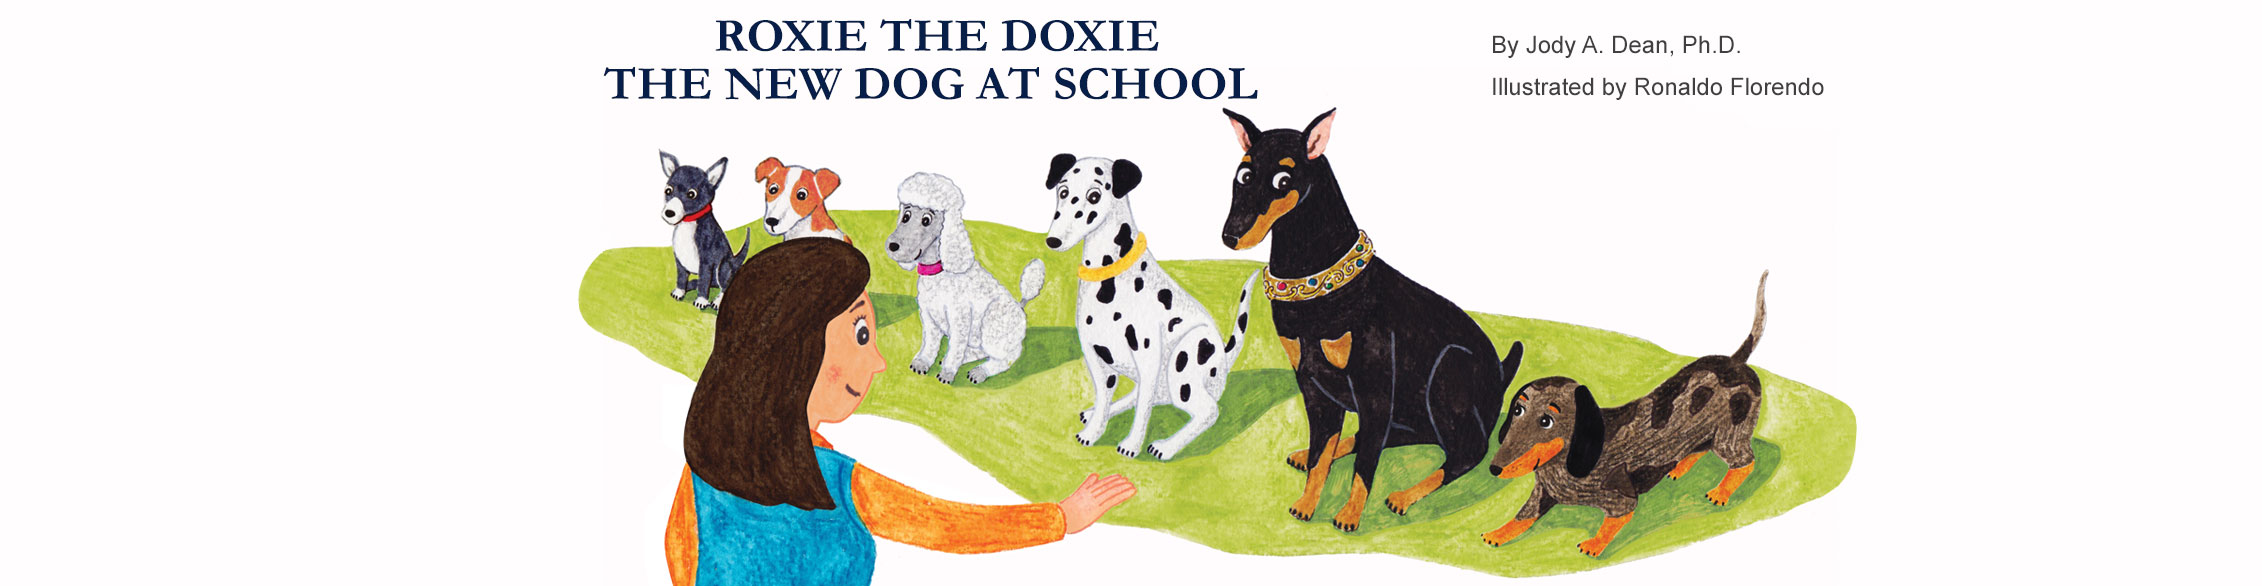 Roxie the Doxie The New Dog at School